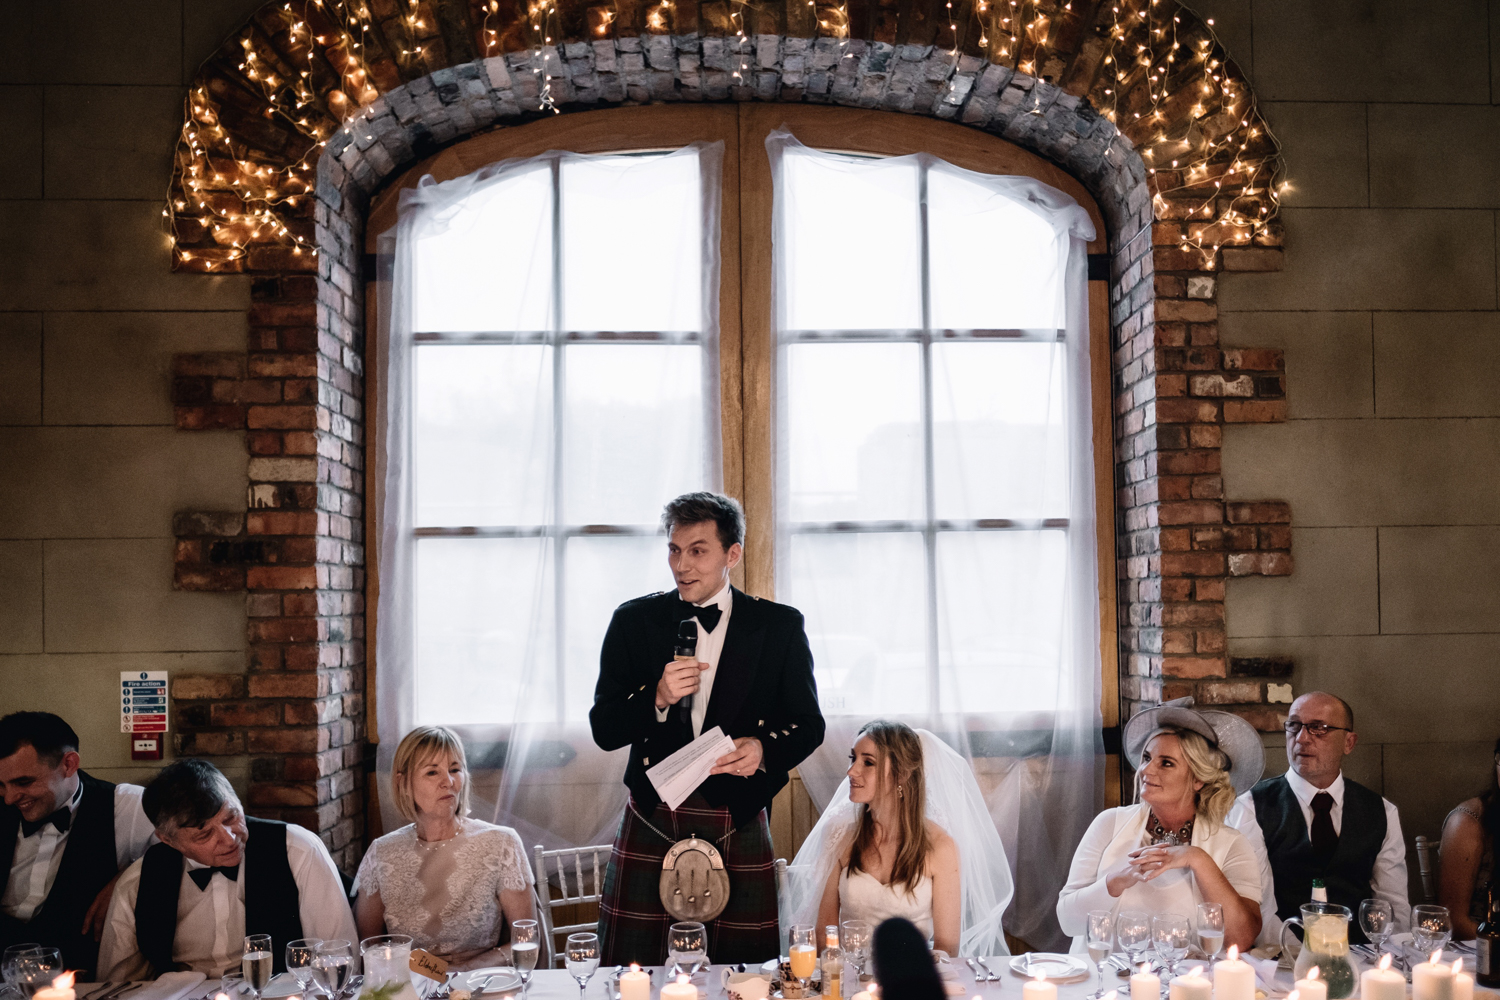 Groom stands and addresses his guests during his speech.